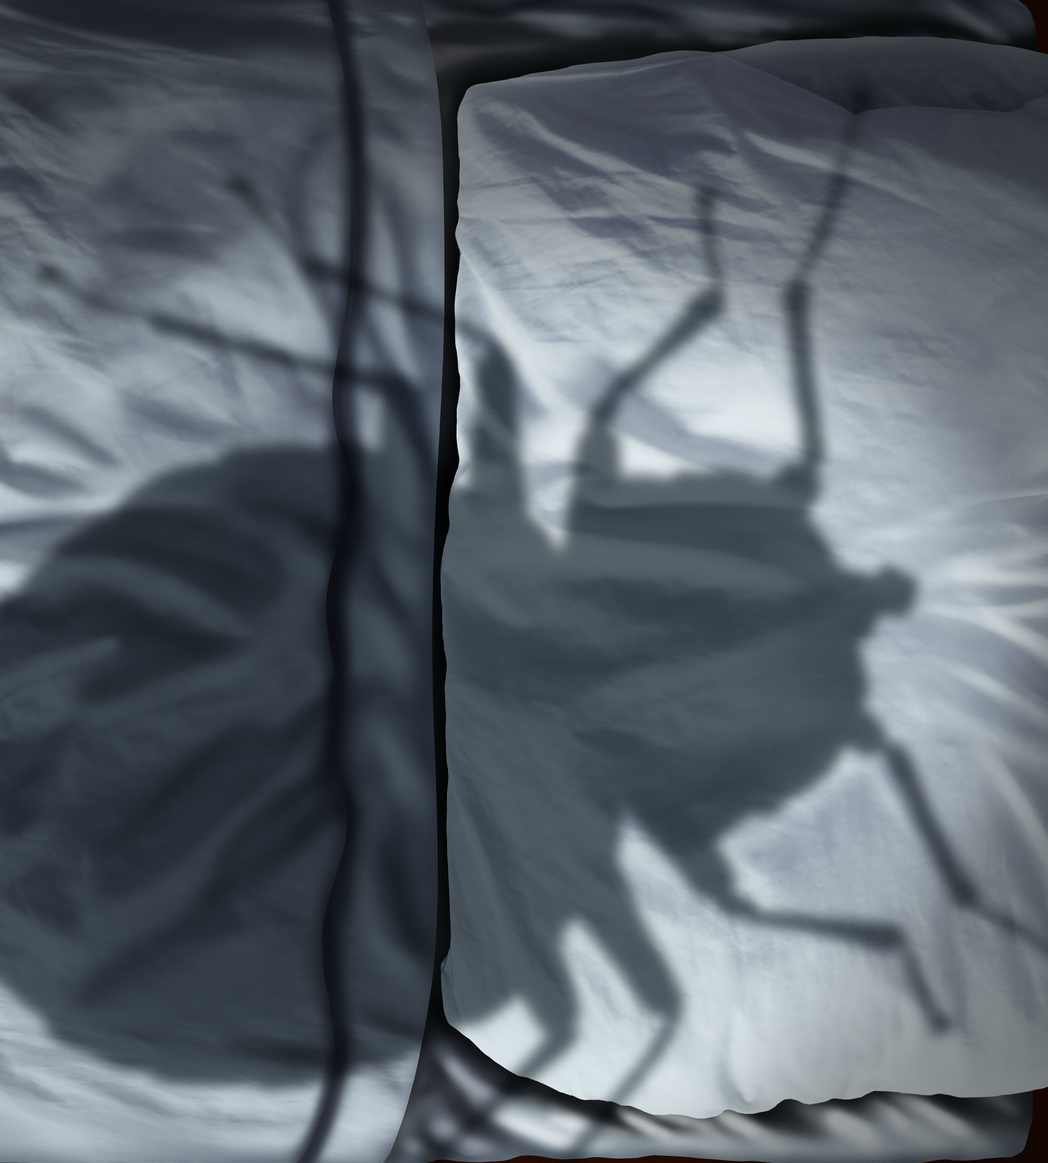 bed-bug on bed